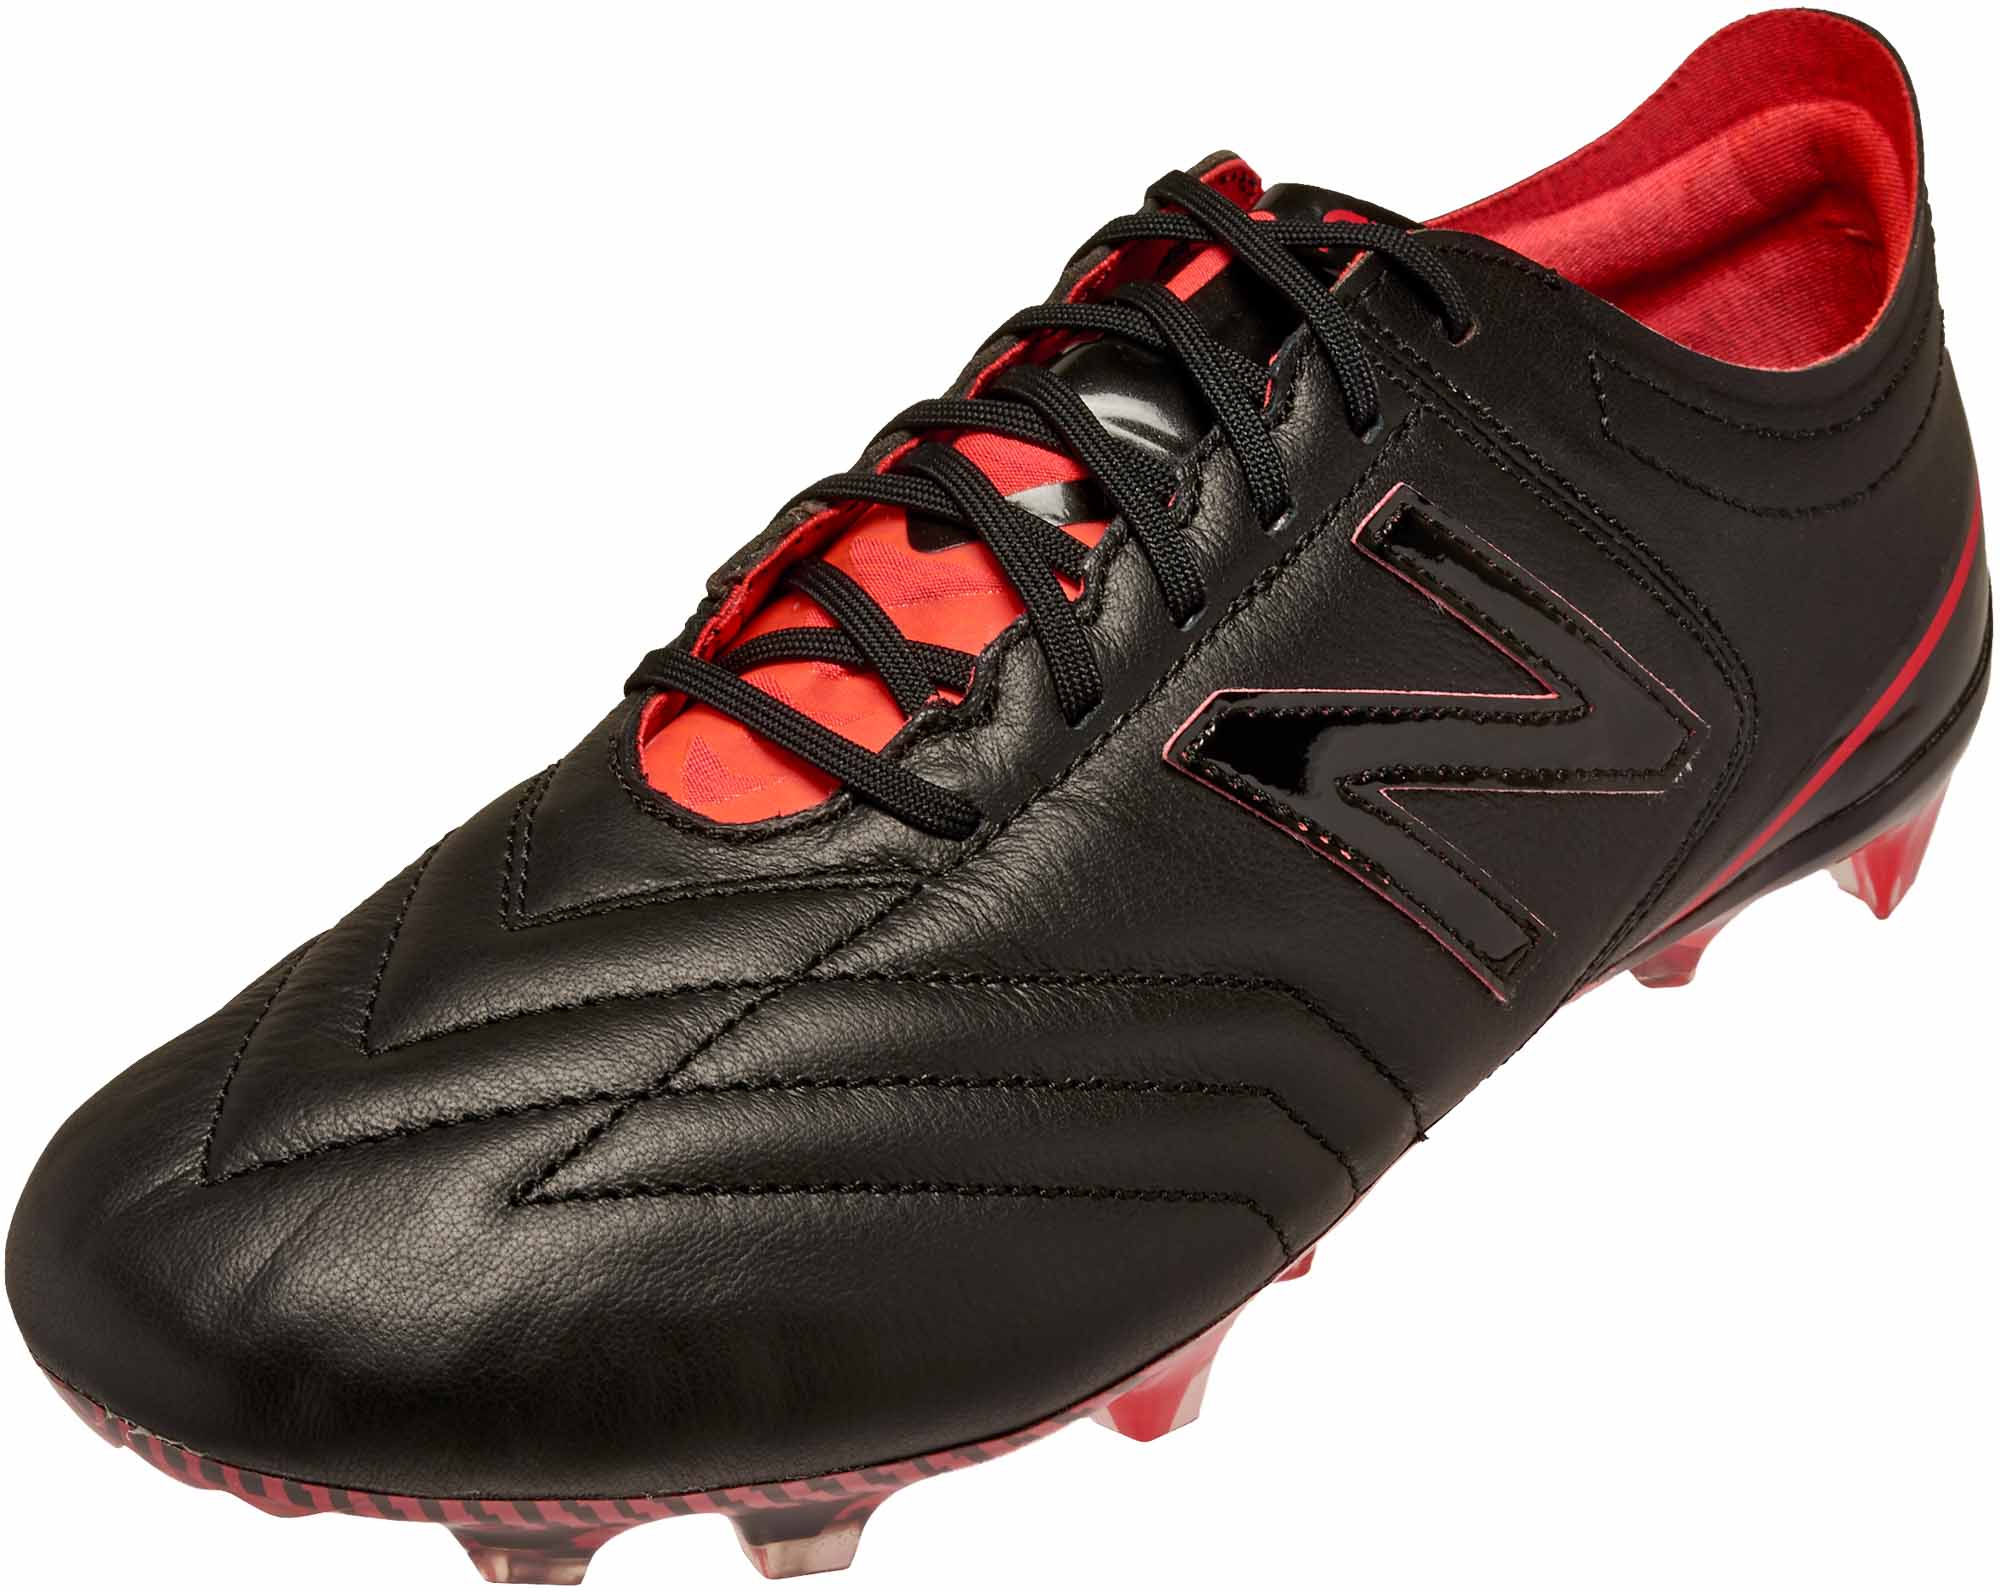 c6a9dd358fb4d New Balance Furon 3.0 FG – K-Leather – Black/Energy Red